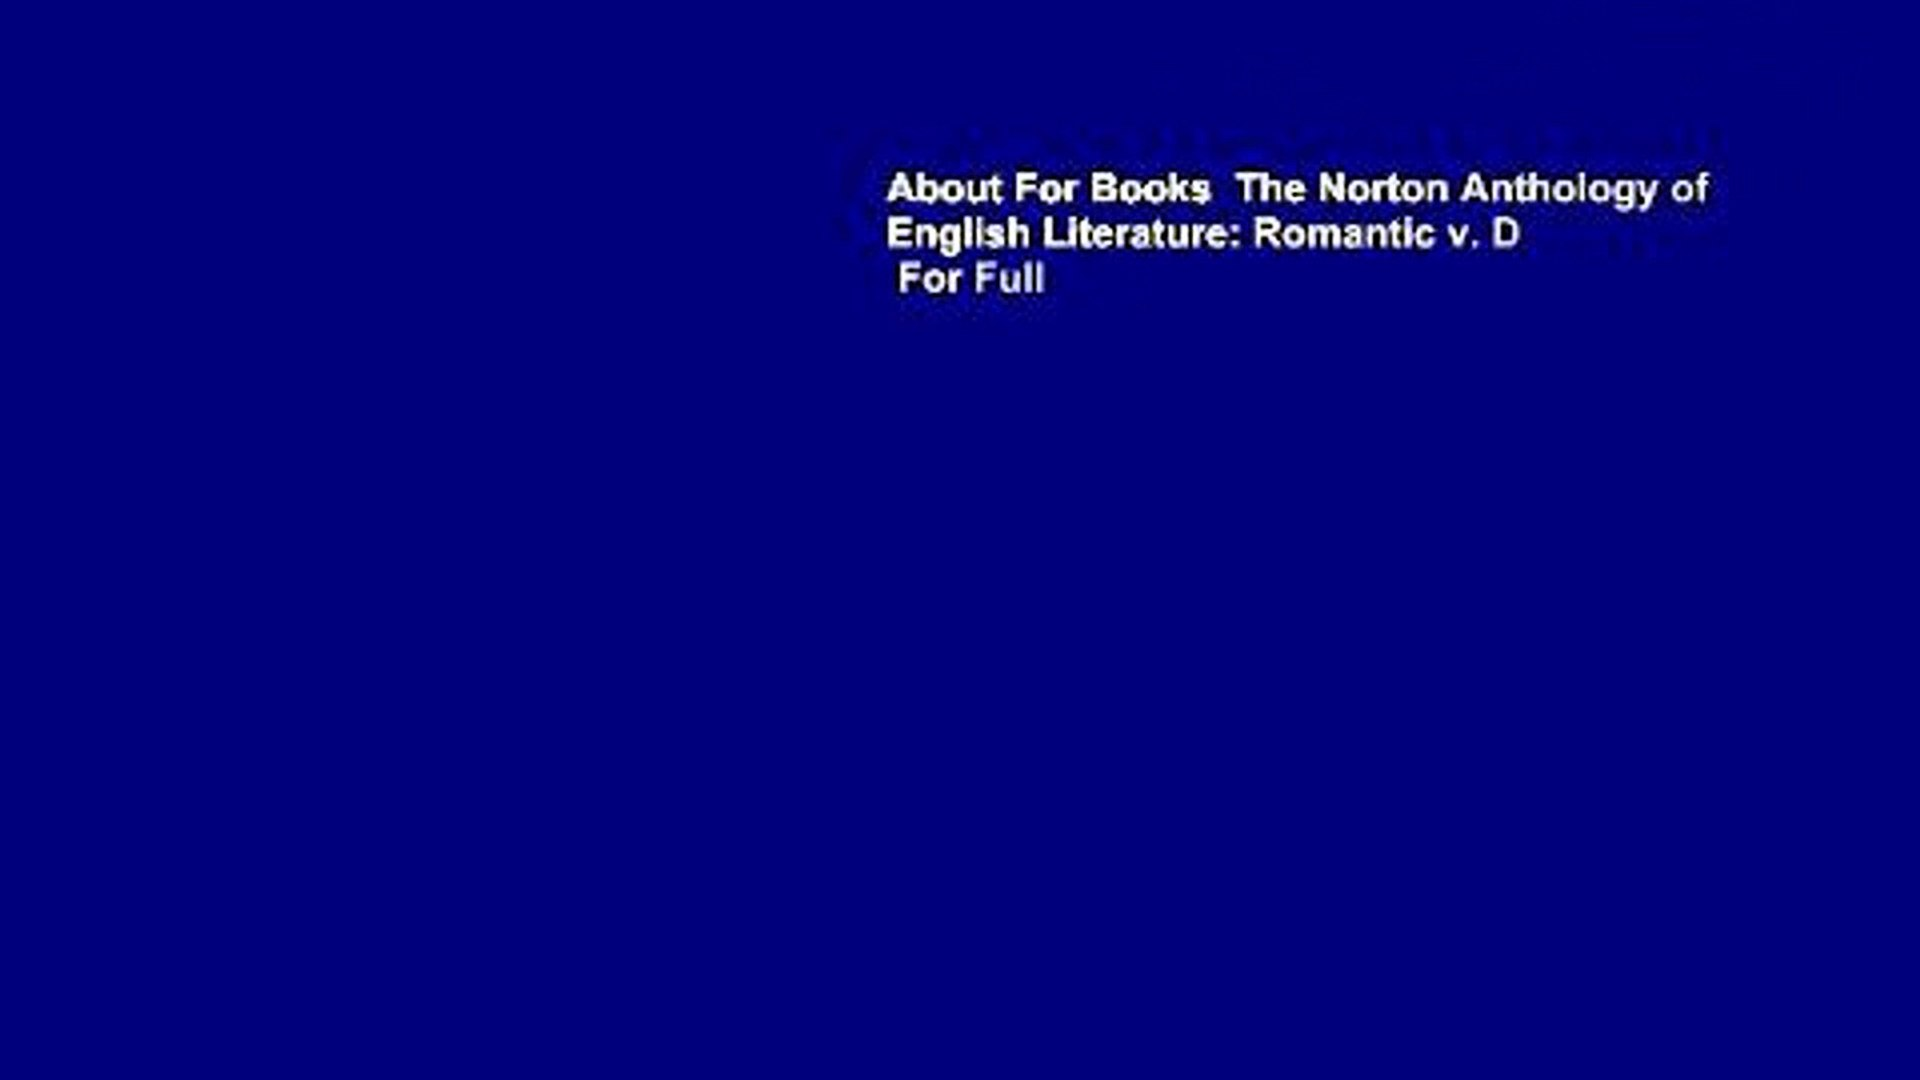 About For Books  The Norton Anthology of English Literature: Romantic v. D  For Full